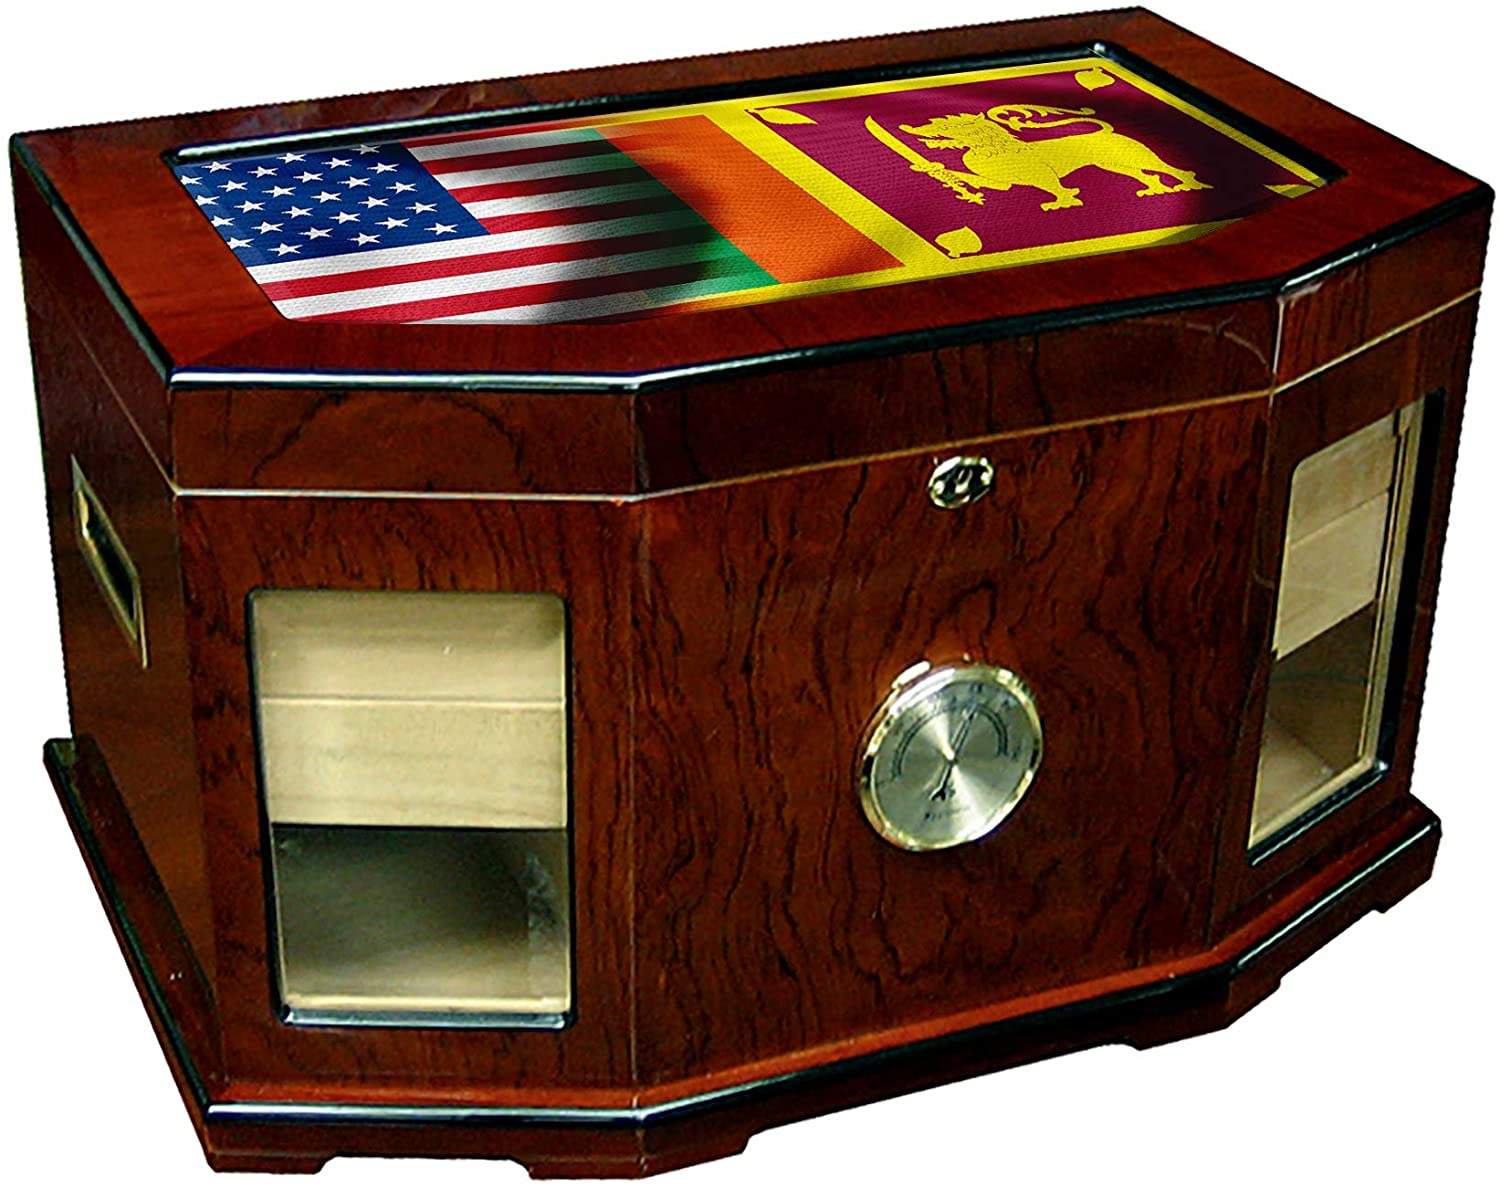 Large Premium Desktop Humidor - Glass Top - Flag of Sri Lanka (Sri Lankan) - Waves with USA Flag - 300 Cigar Capacity - Cedar Lined with Two humidifiers & Large Front Mounted Hygrometer.